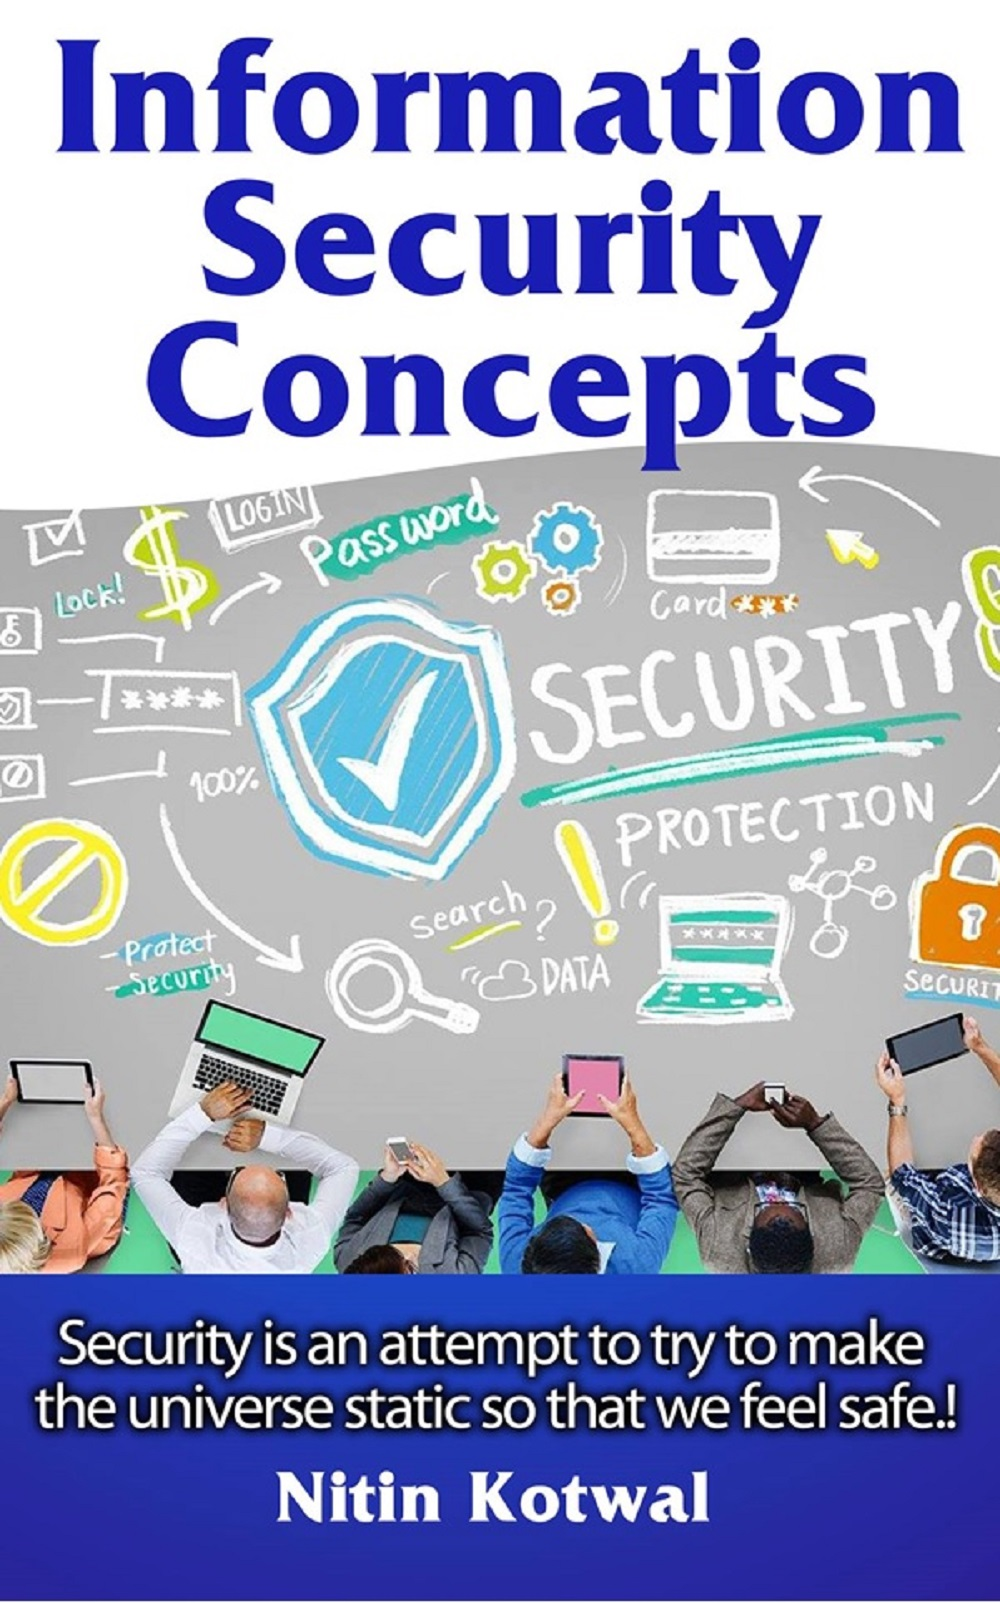 Information Security Concepts E-book